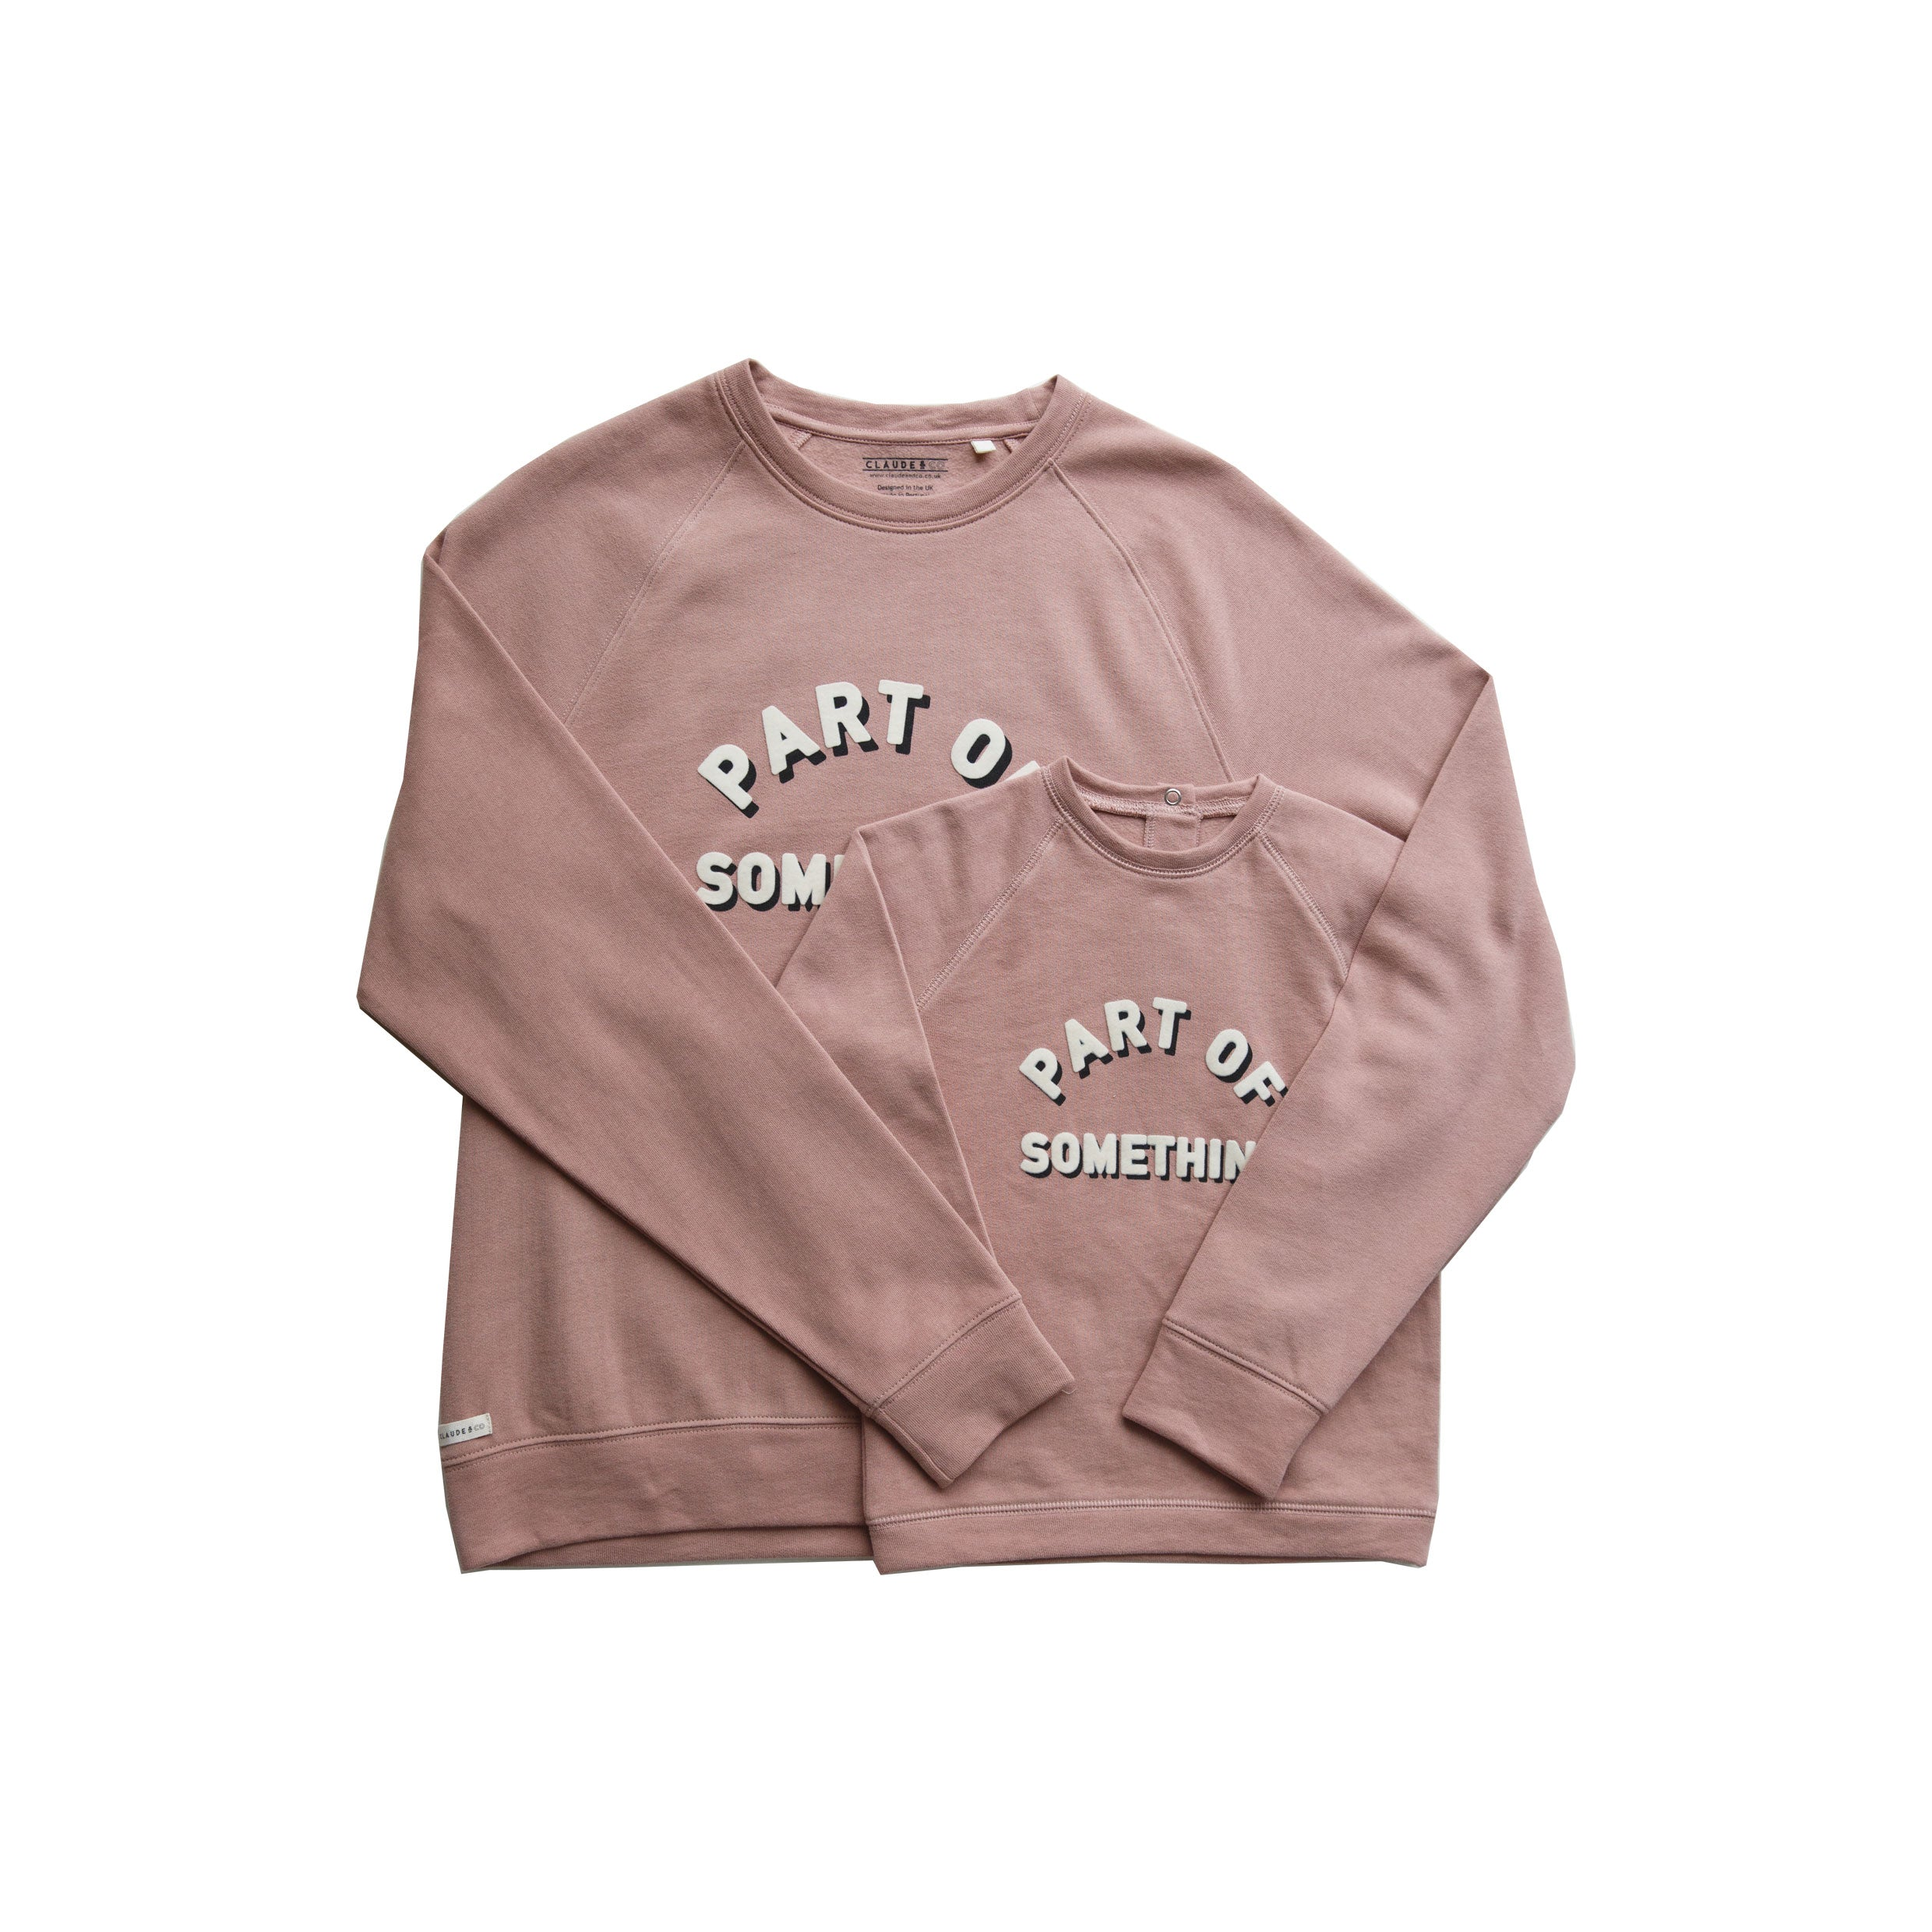 'Part Of Something' Dusky Pink Sweater Child - Charity Donation - Claude & Co